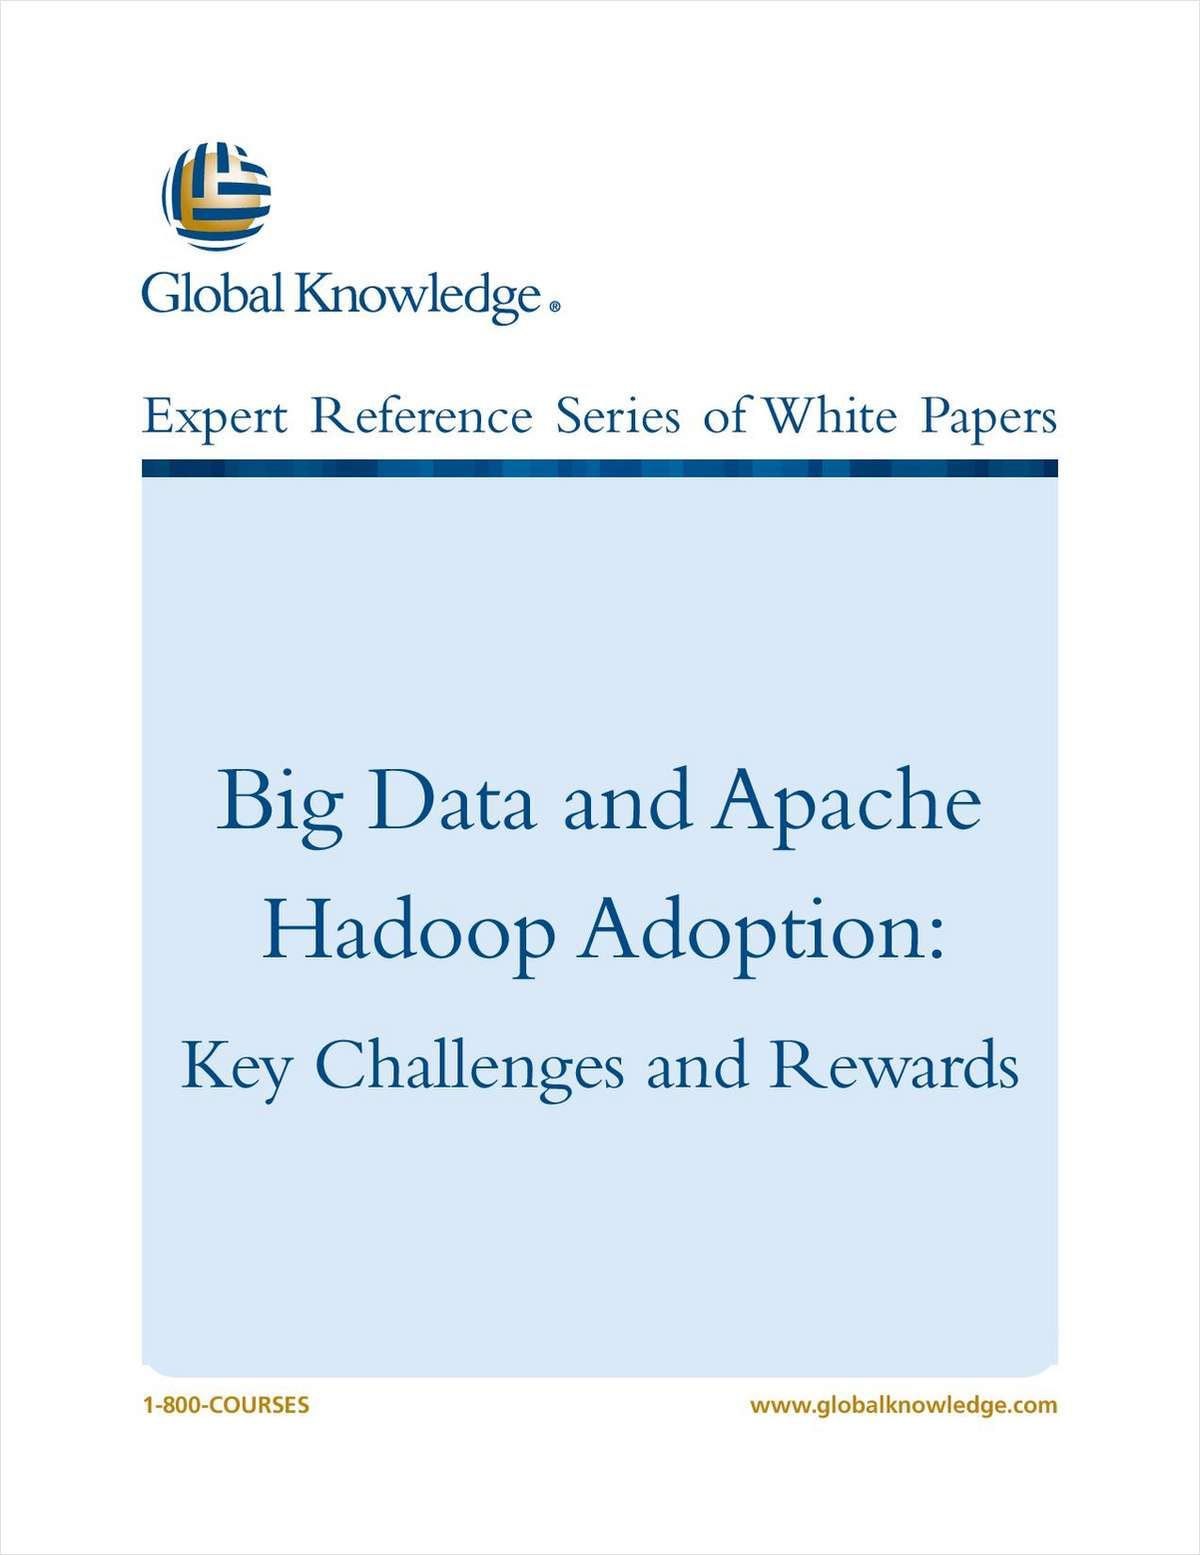 Big Data and Apache Hadoop Adoption: Key Challenges and Rewards